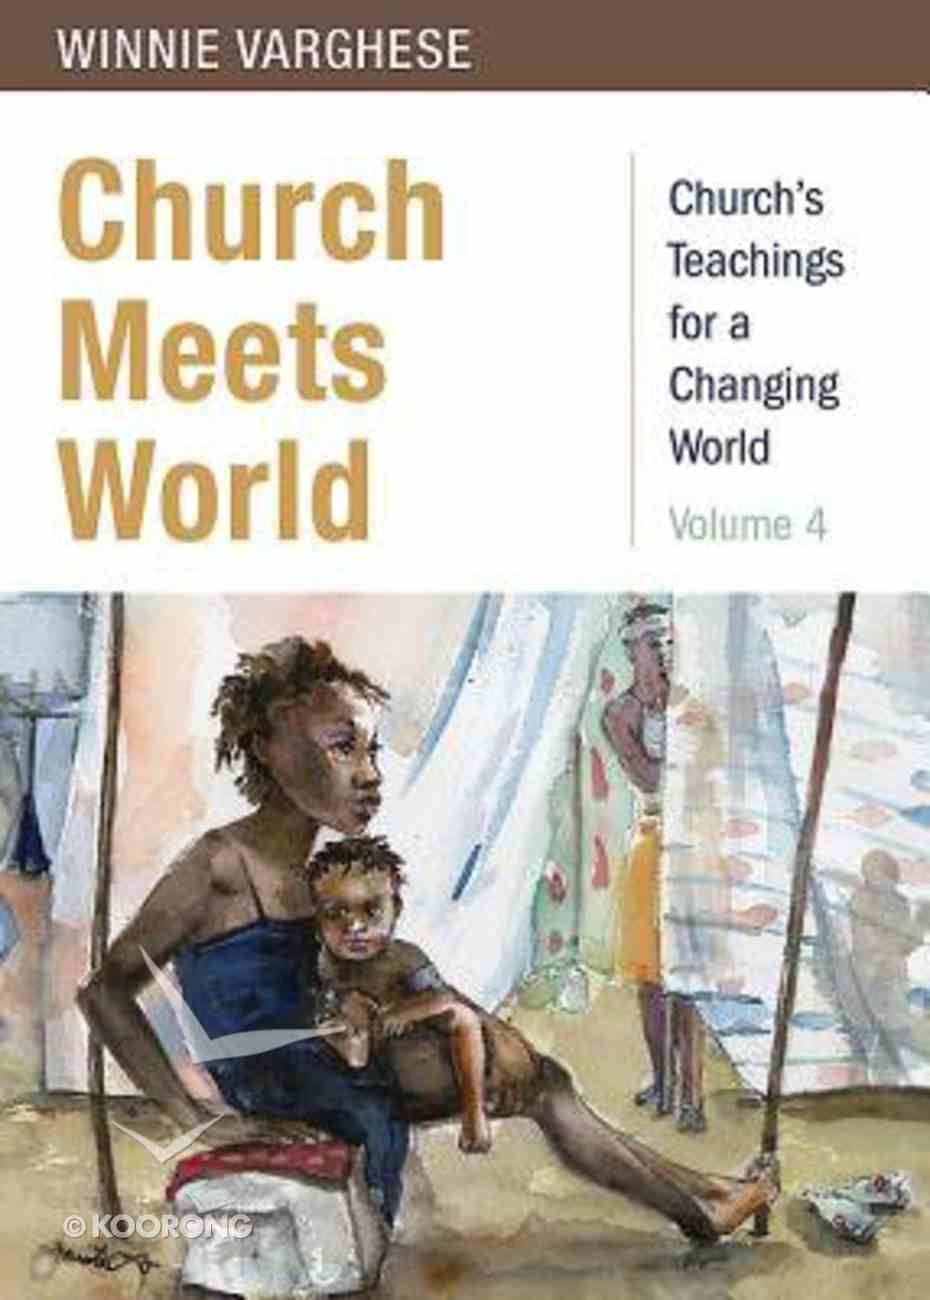 Church Meets World (Volume 4) Paperback